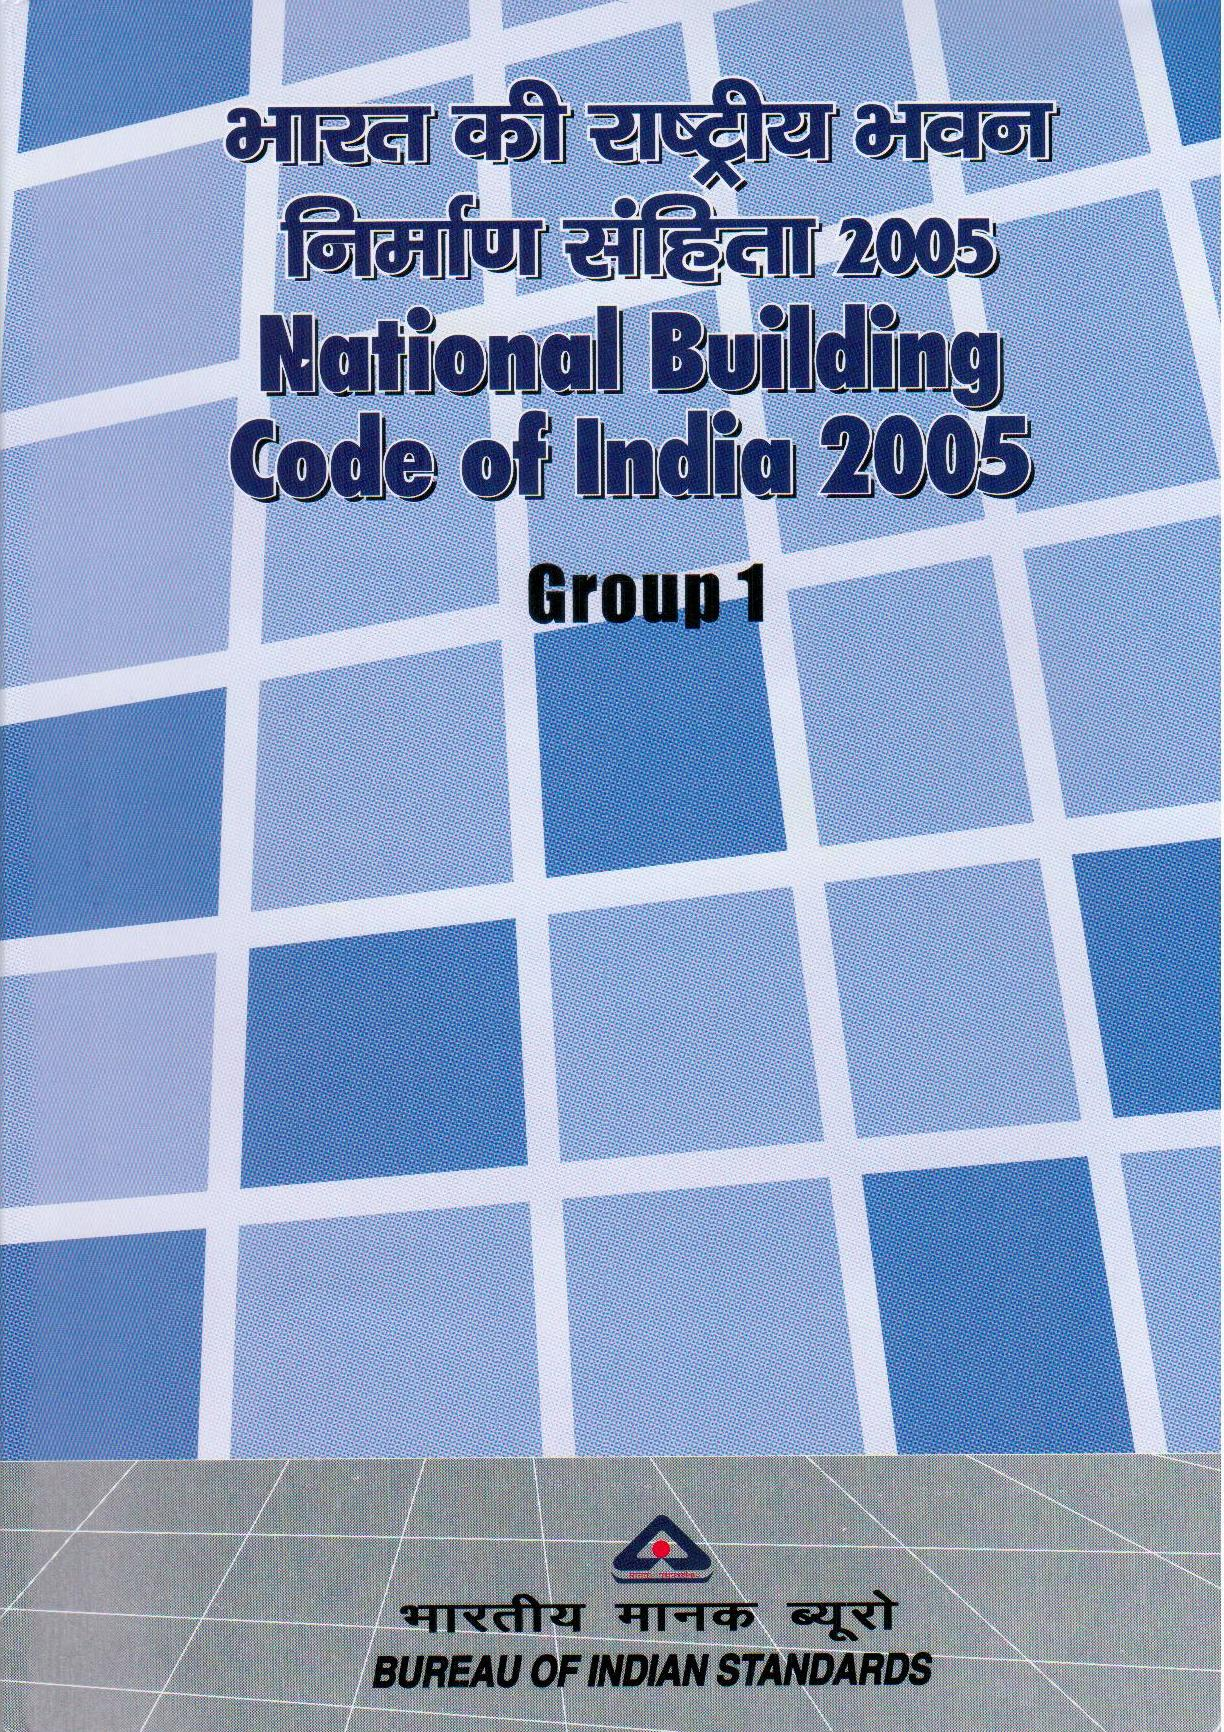 Is Sp 7 Nbc National Building Code Of India 2005 Group